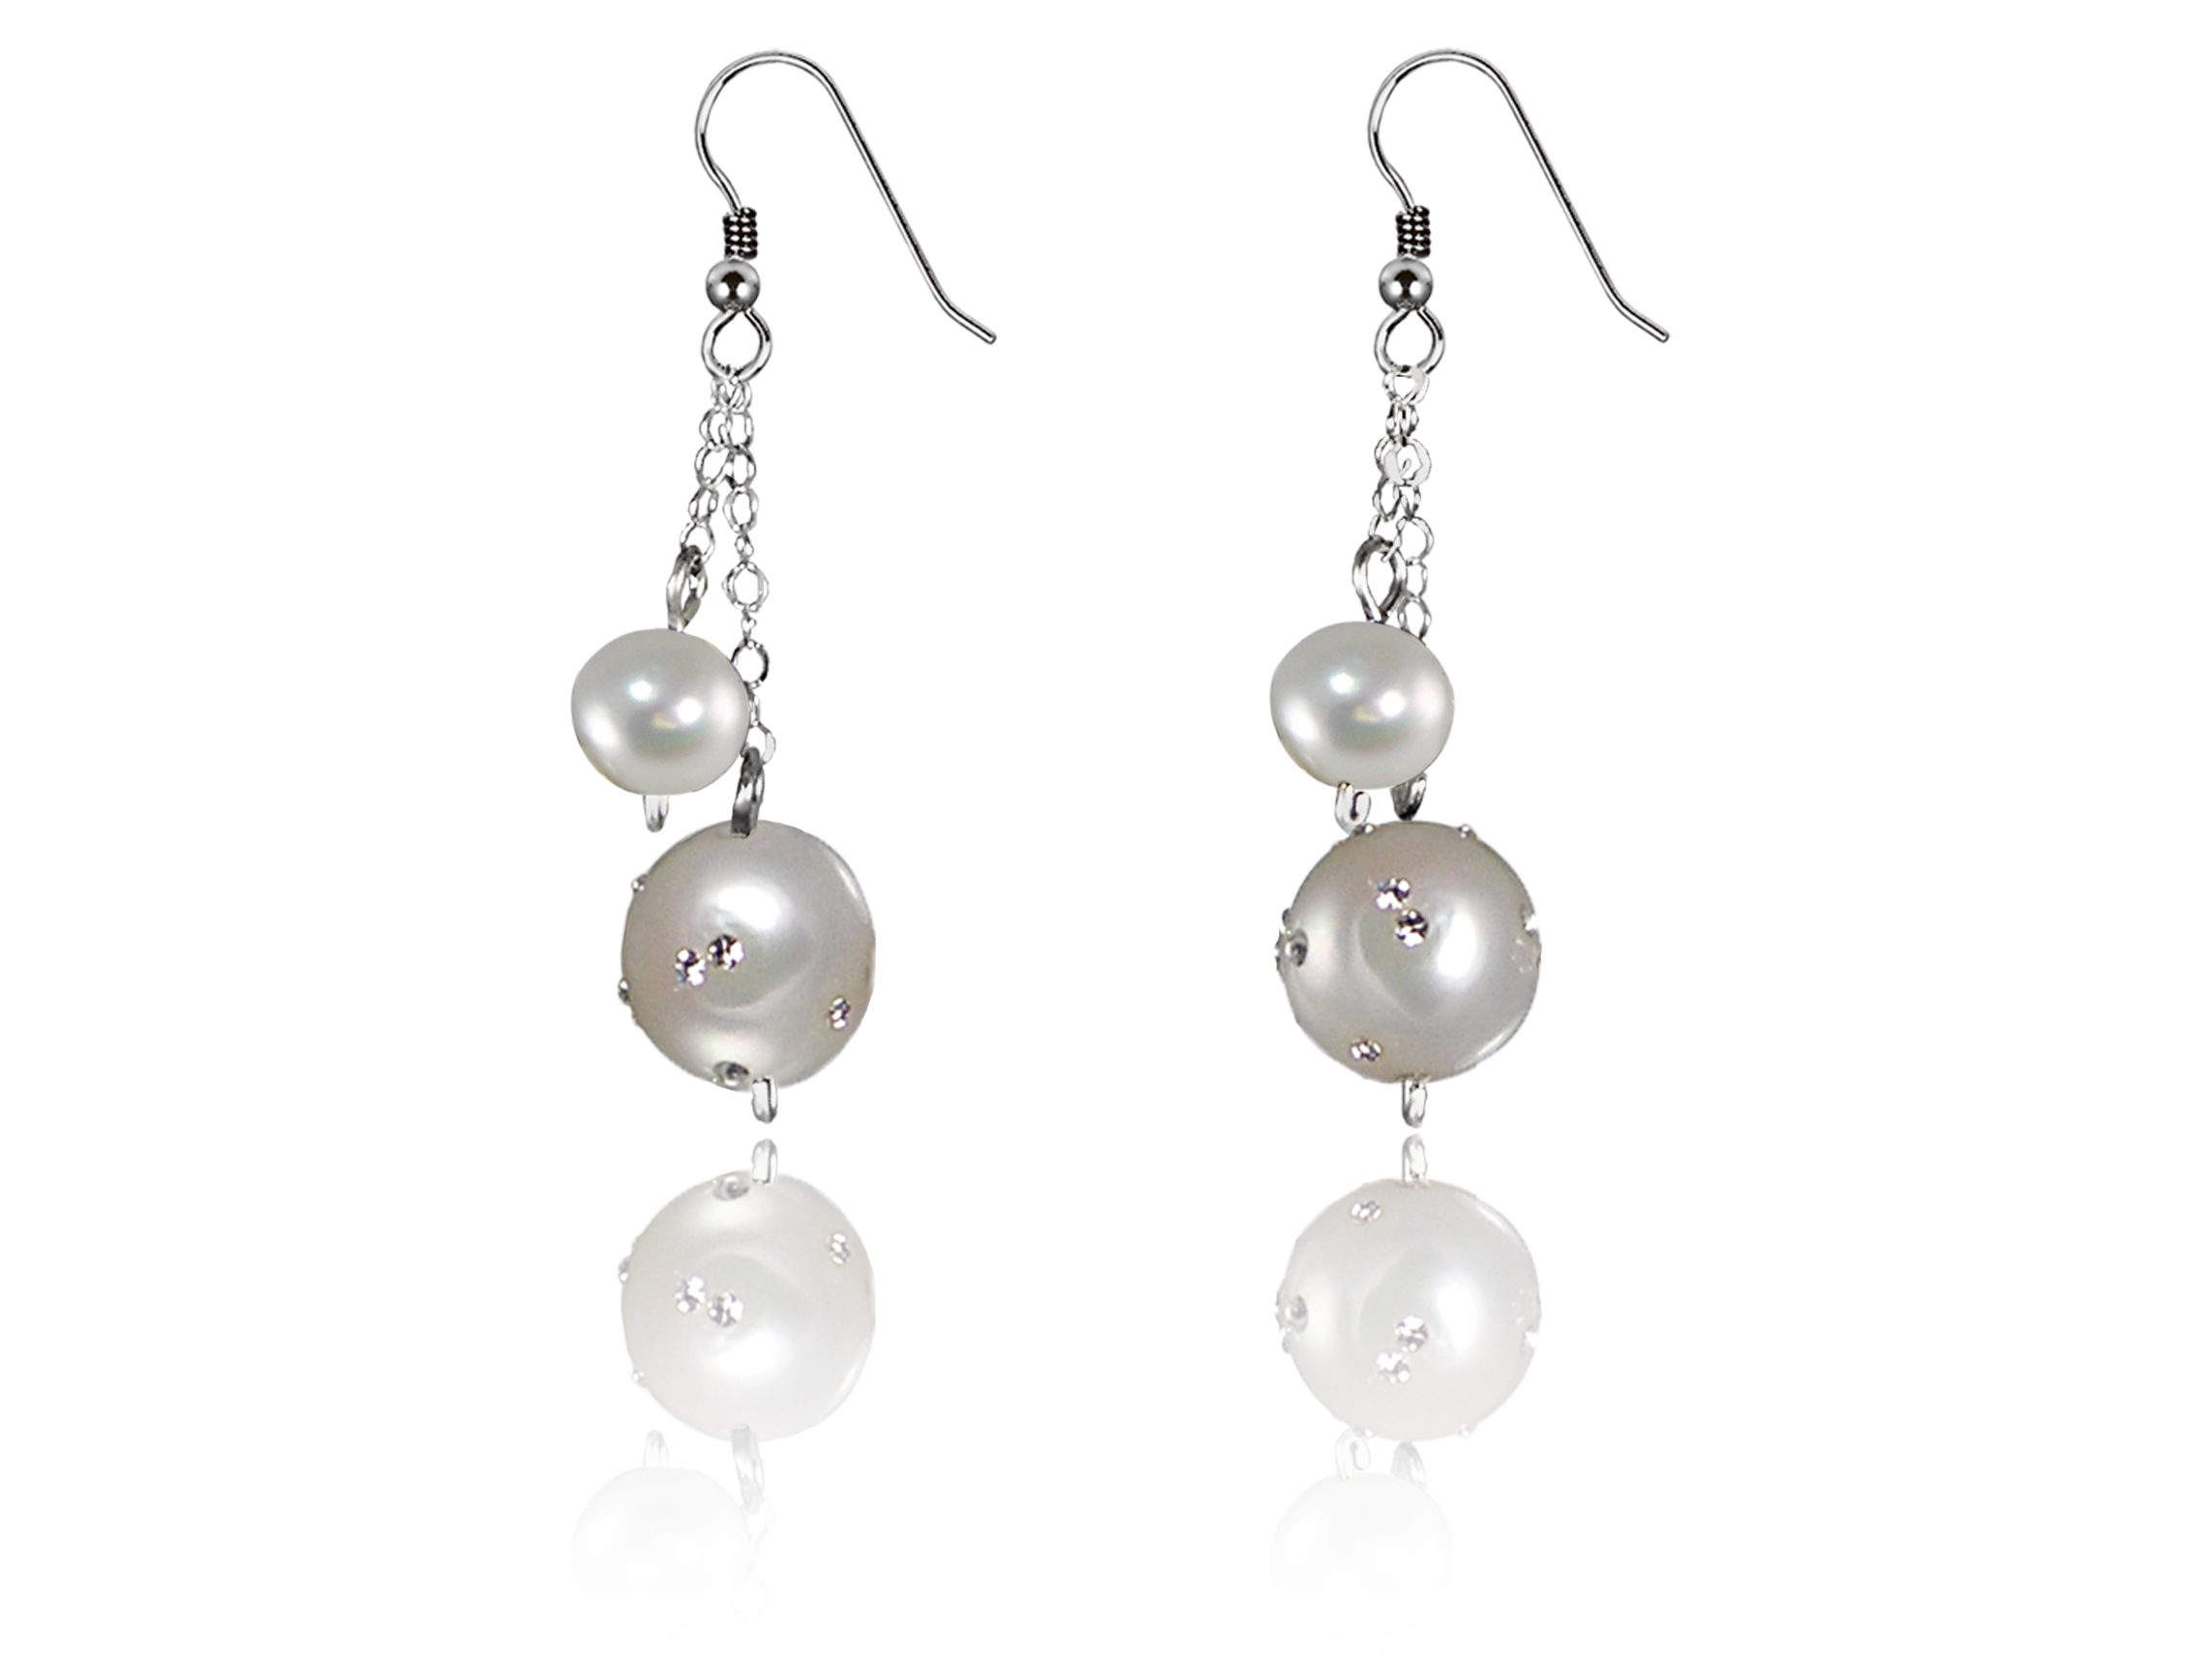 Constellation Pearl Earrings - Choose Your Color!